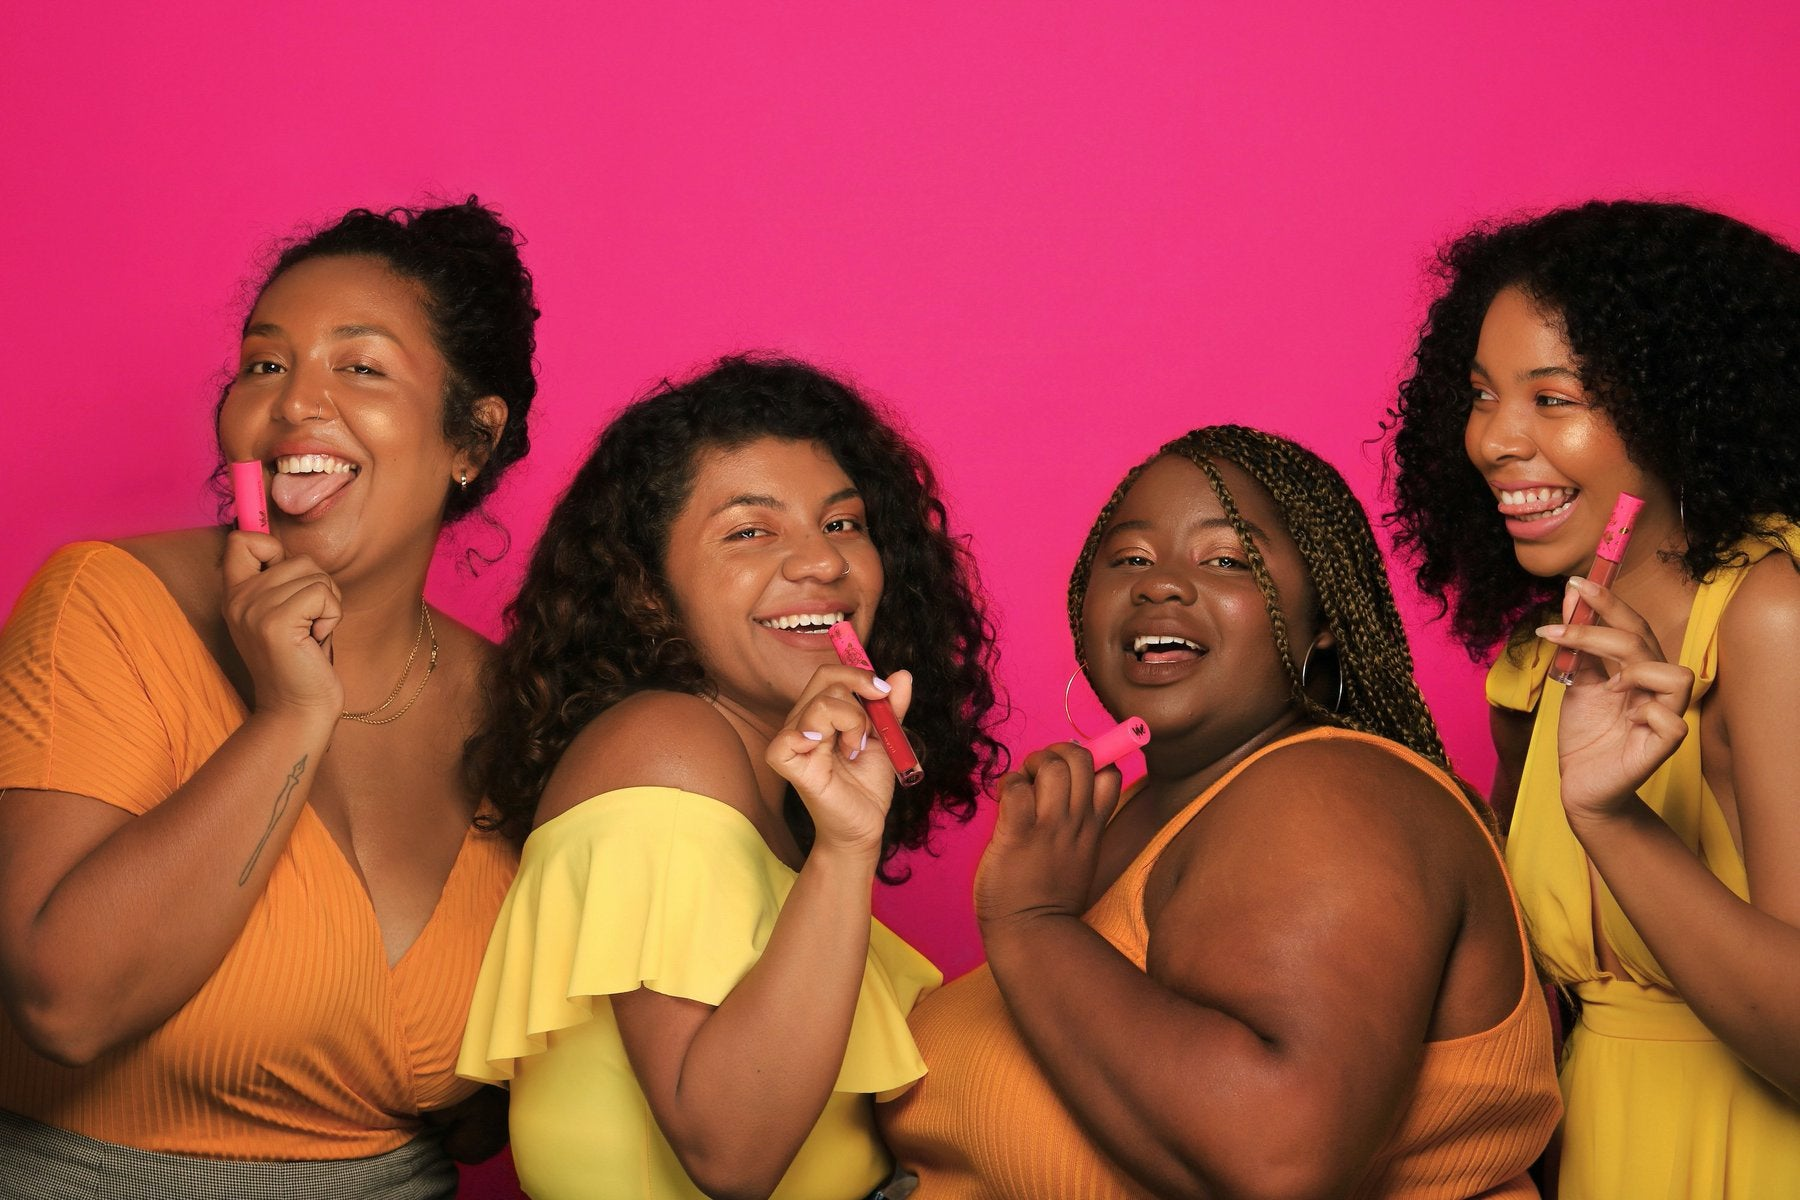 Four women wearing yellow hold lipsticks against a pink background